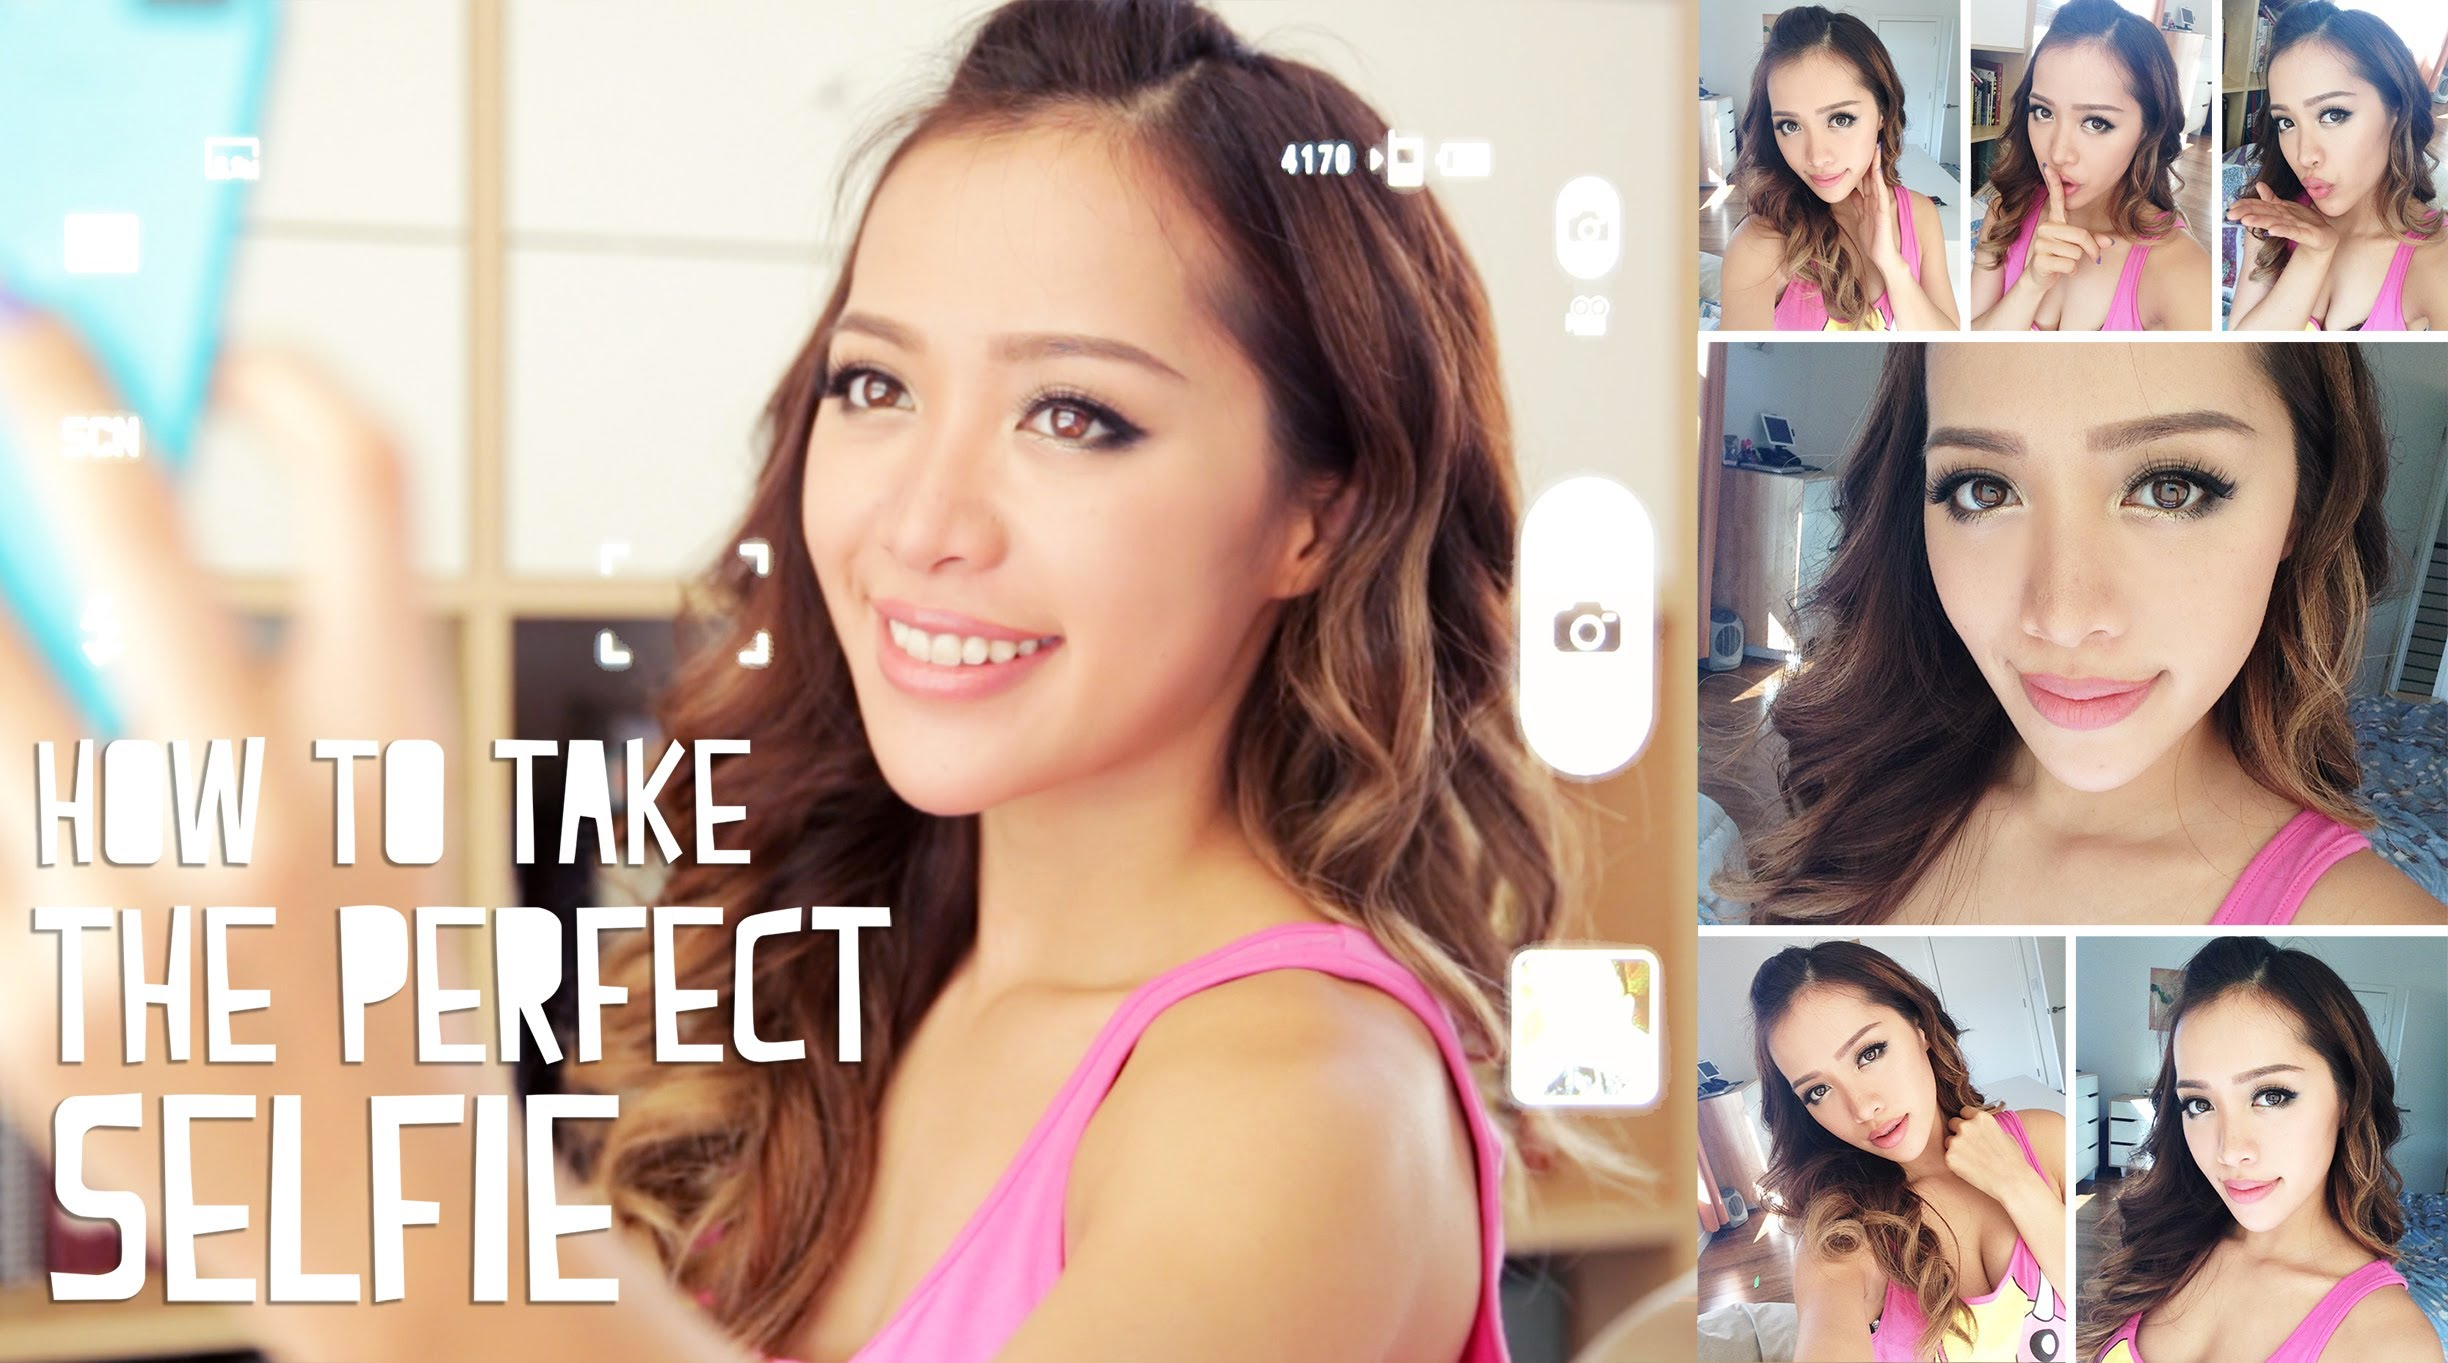 「如何拍出完美自拍」- How to Take The Perfect Selfie